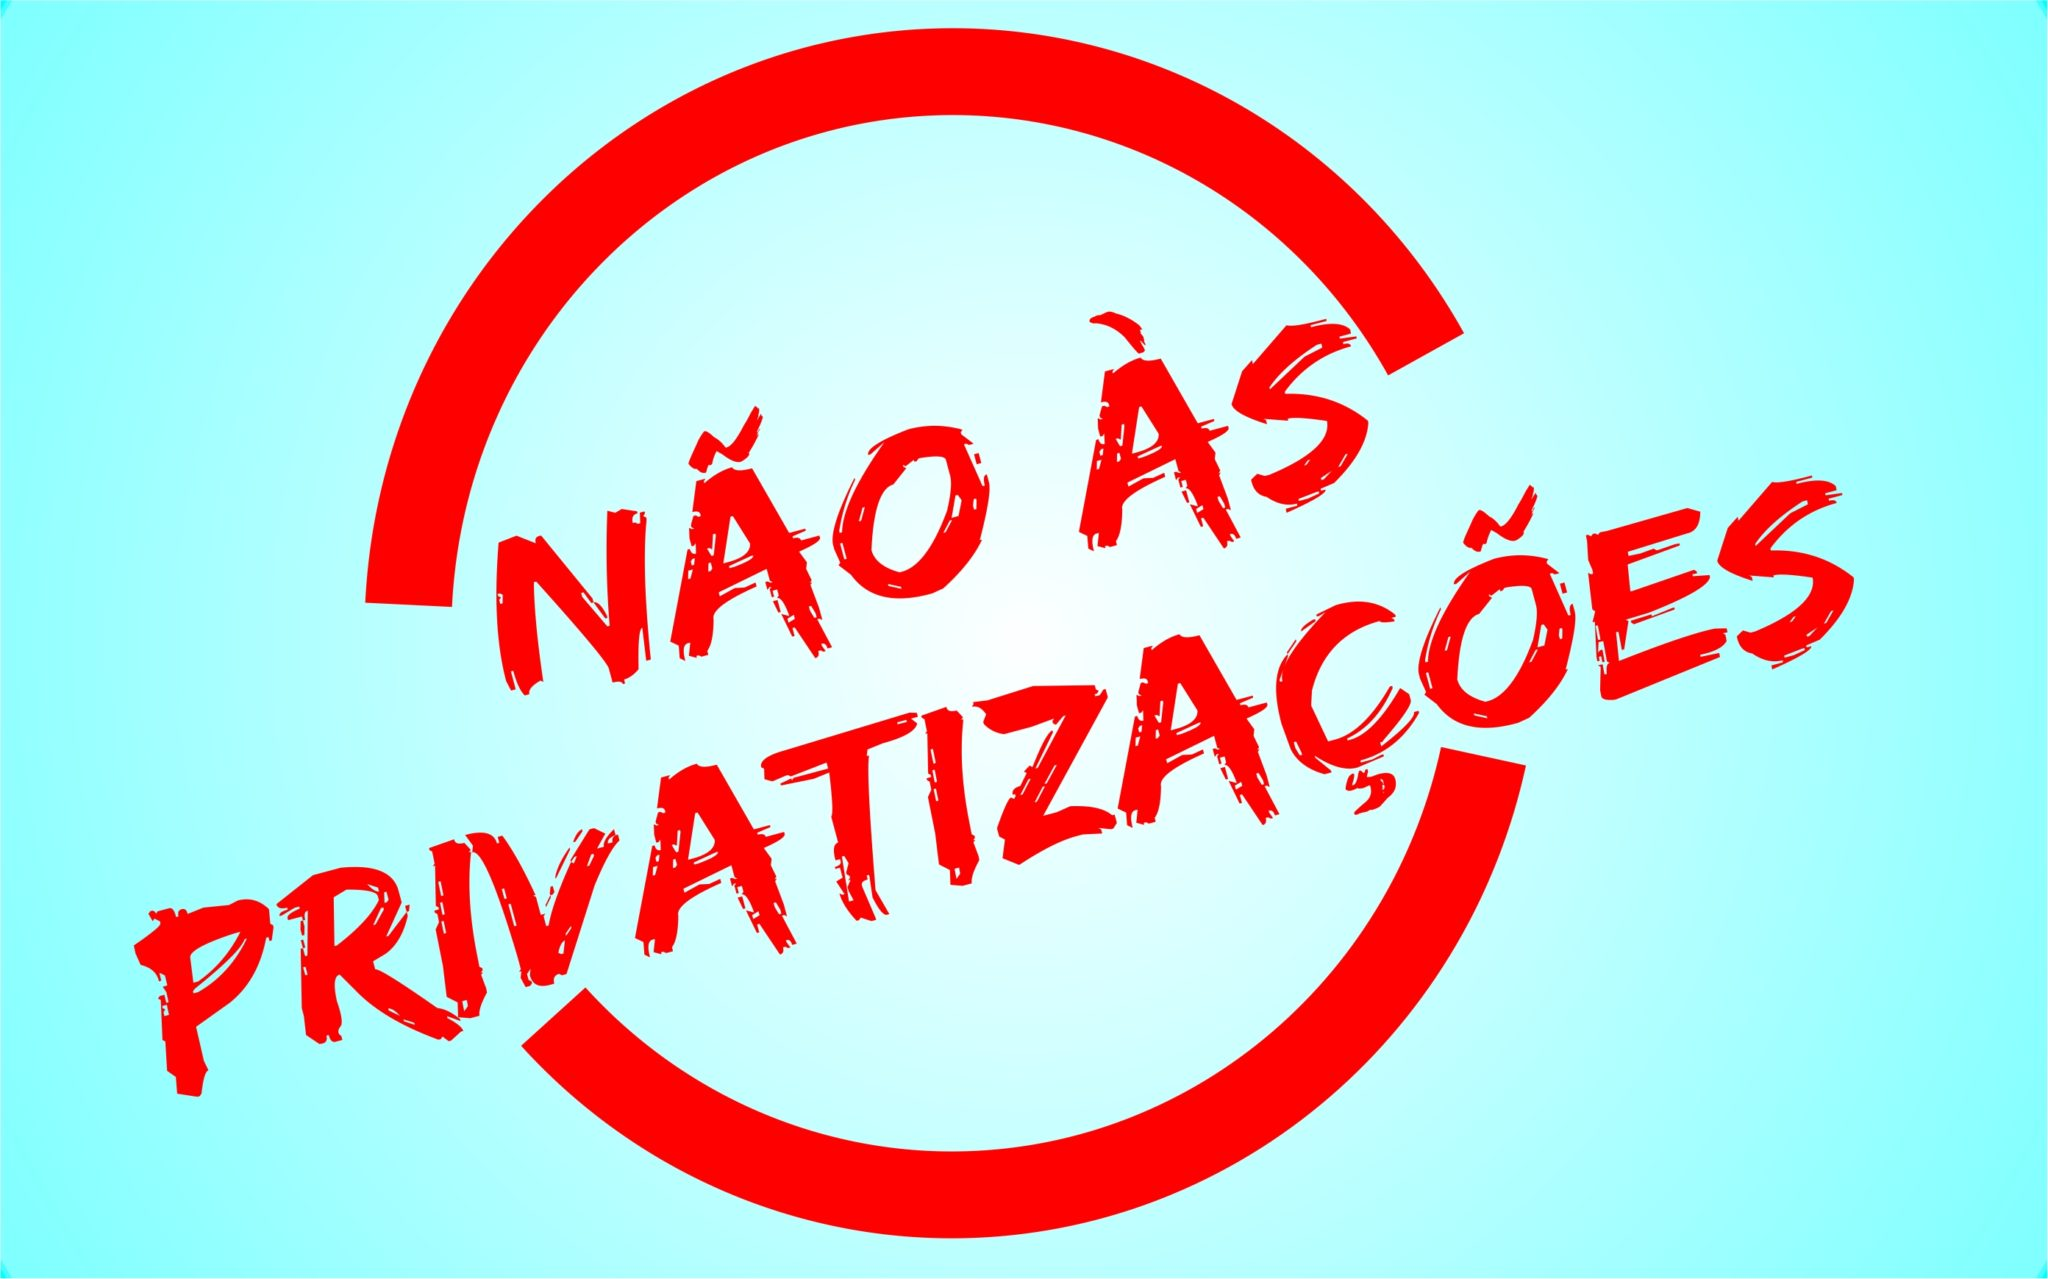 nao-as-privatizacoes2-2048x1279.jpg